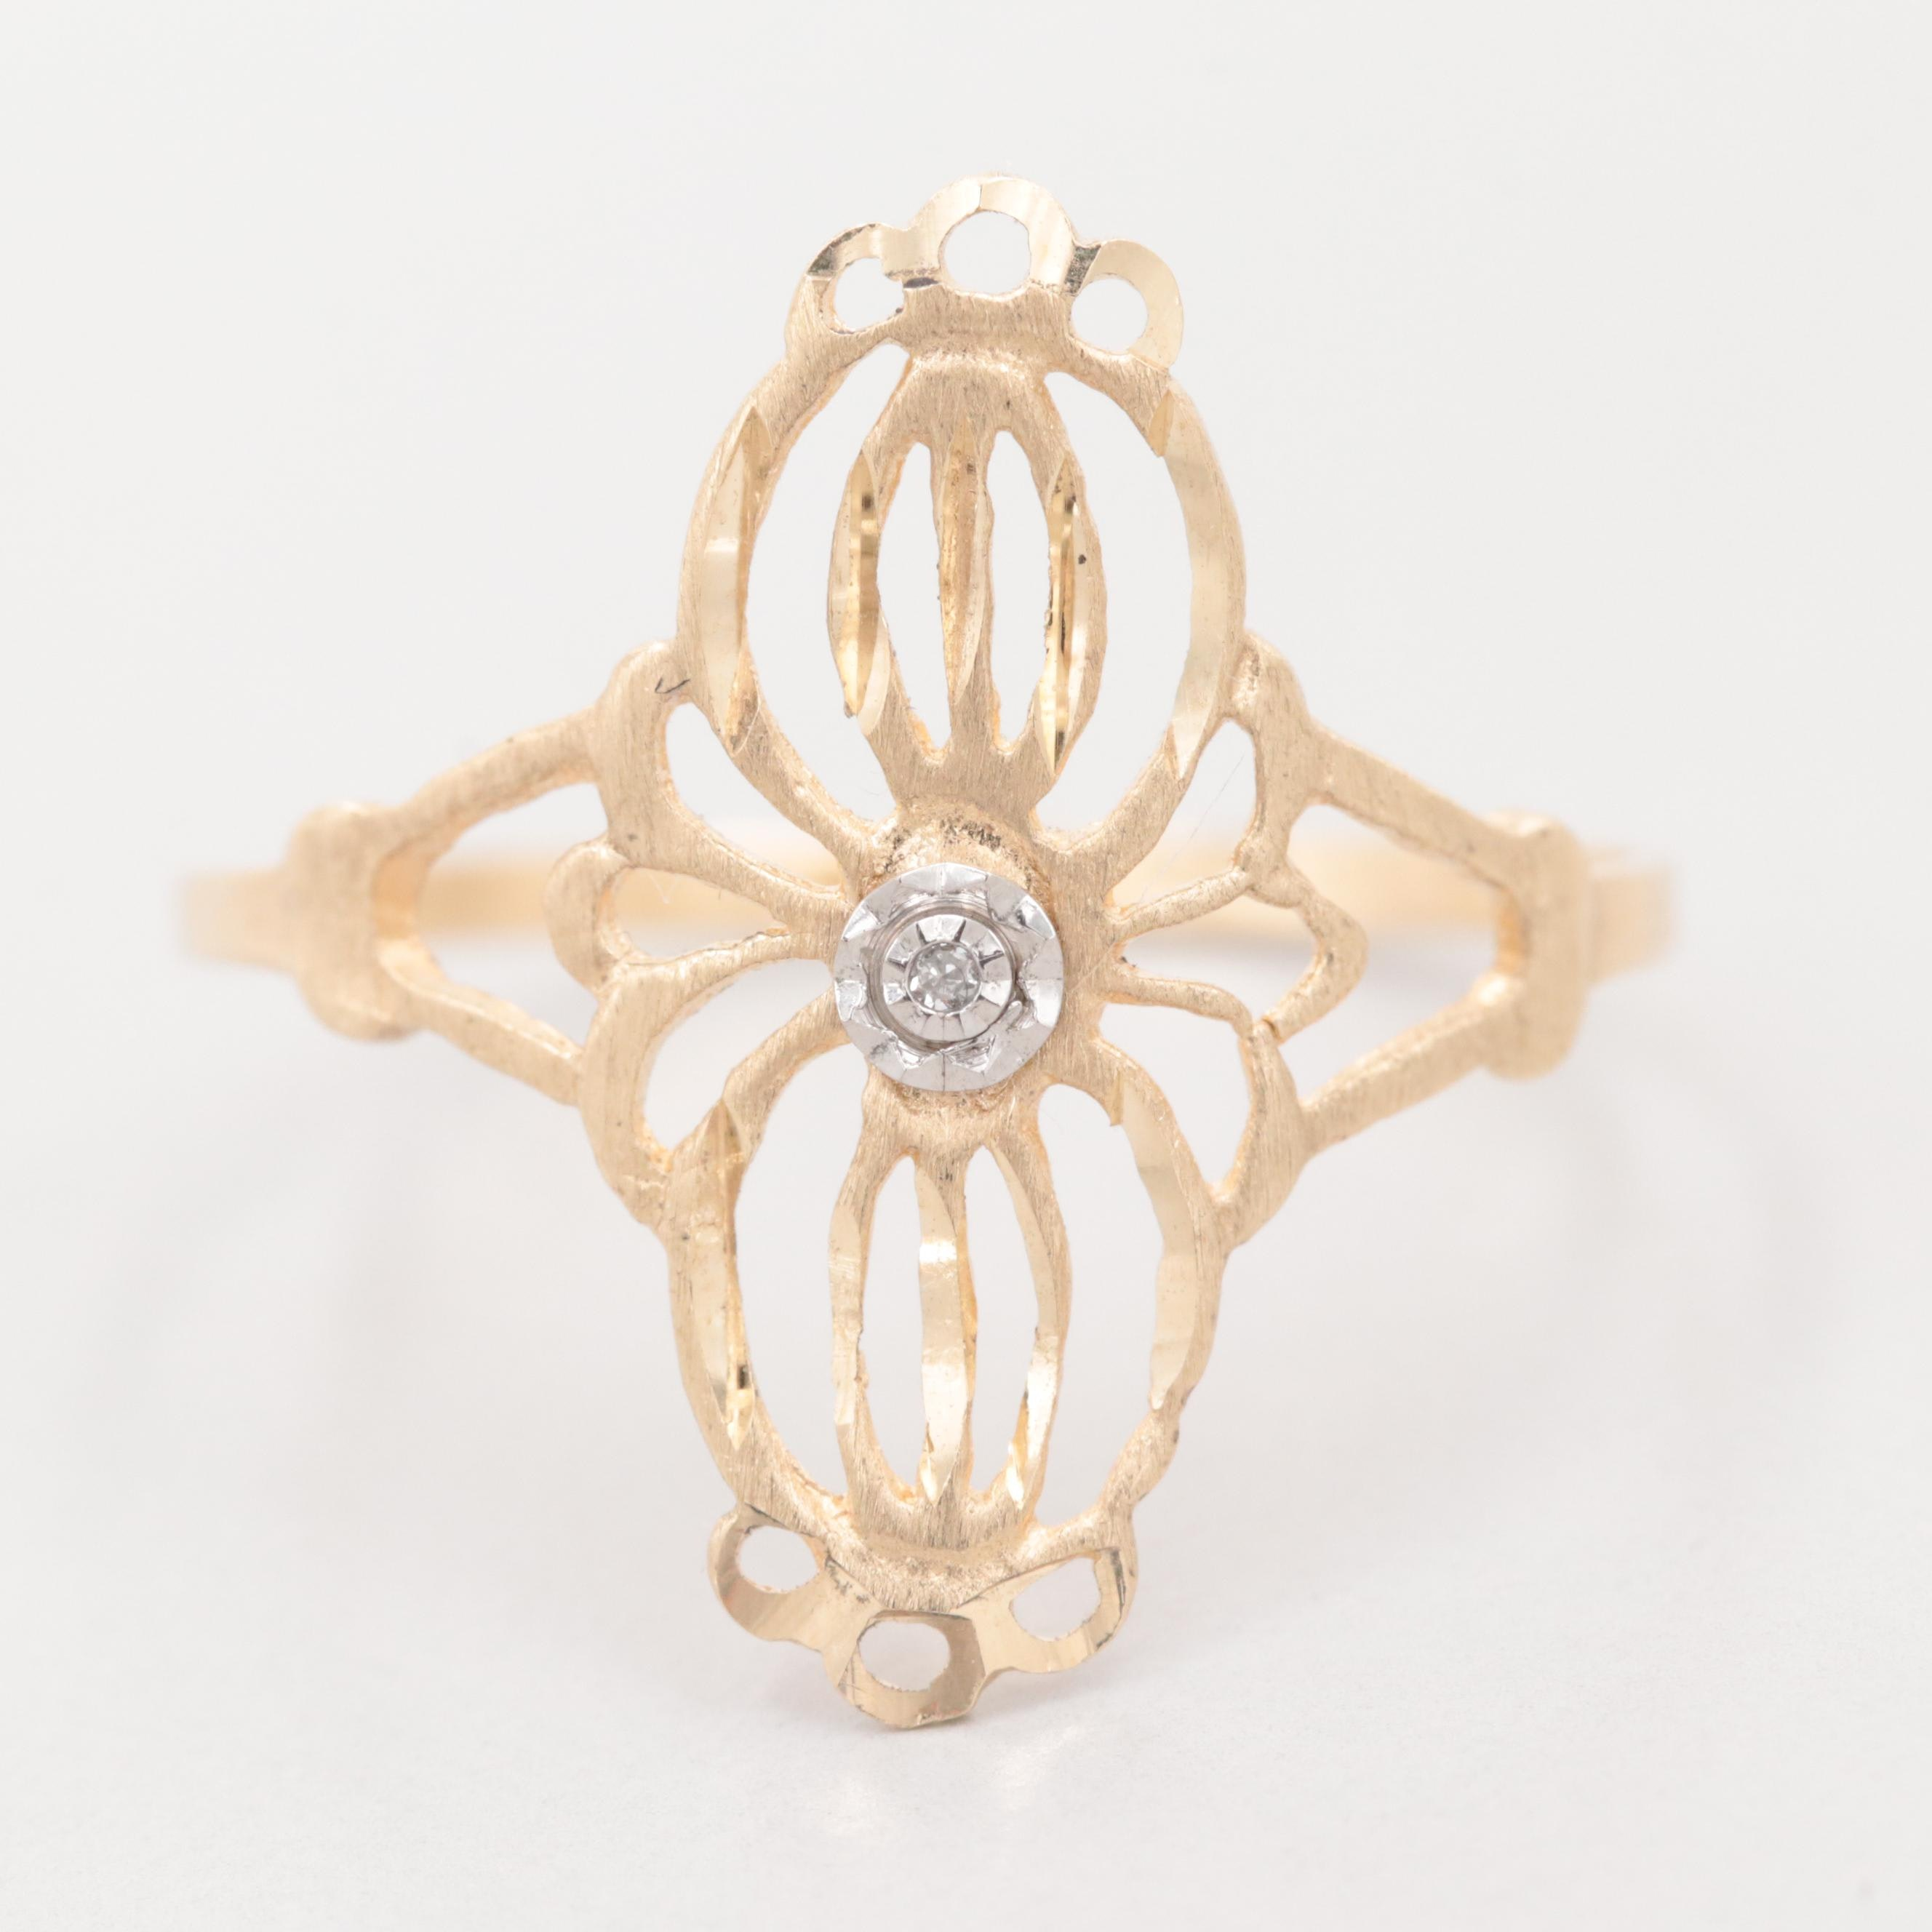 10K Yellow Gold Diamond Openwork Ring with White Gold Accent